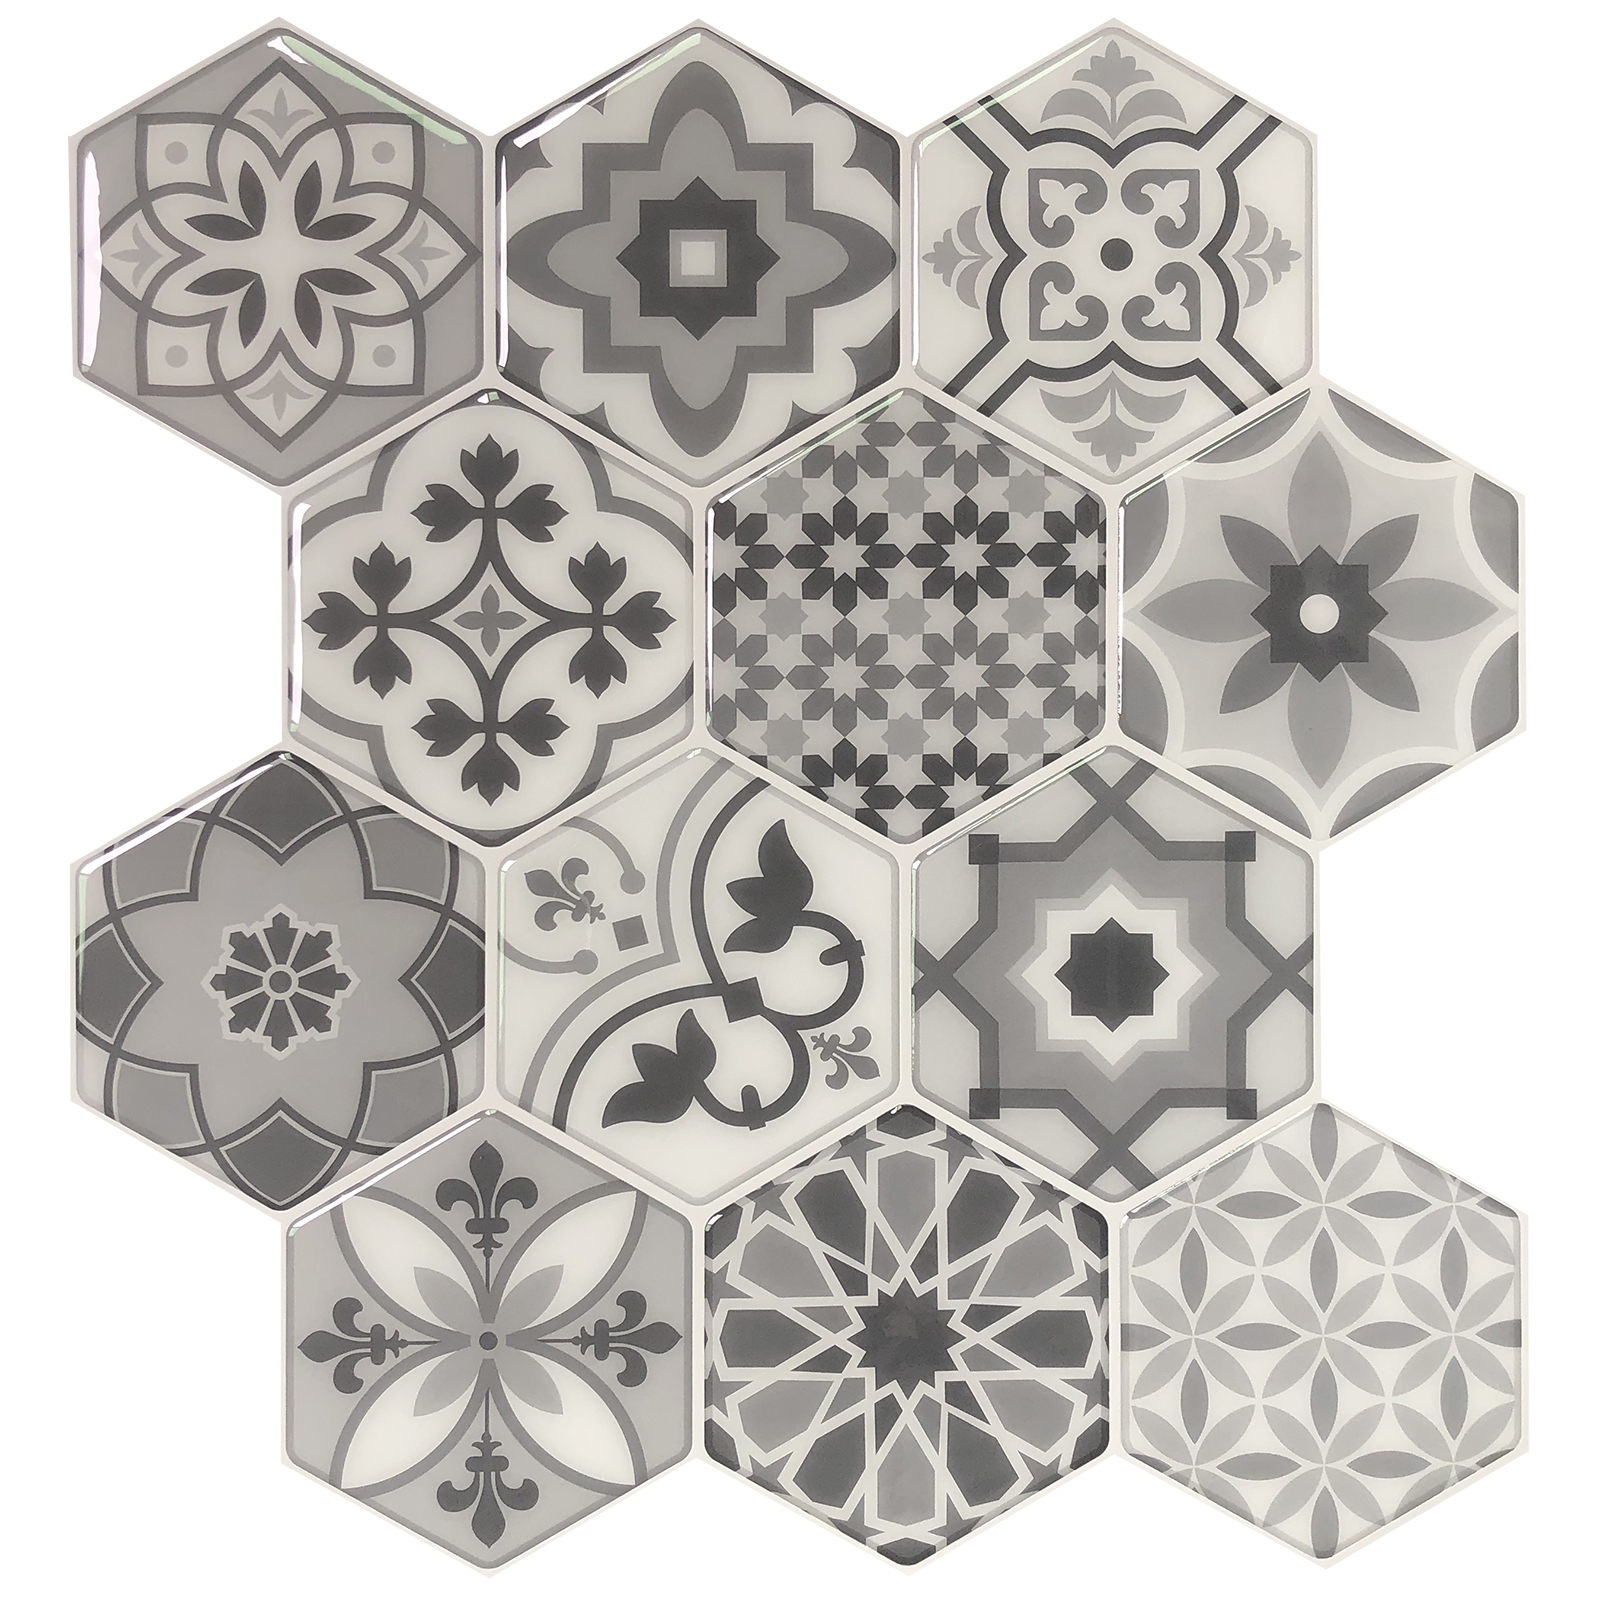 10 Sheets Peel and Stick Backsplash Tiles for Kitchen in Talavera Mexican Tiles